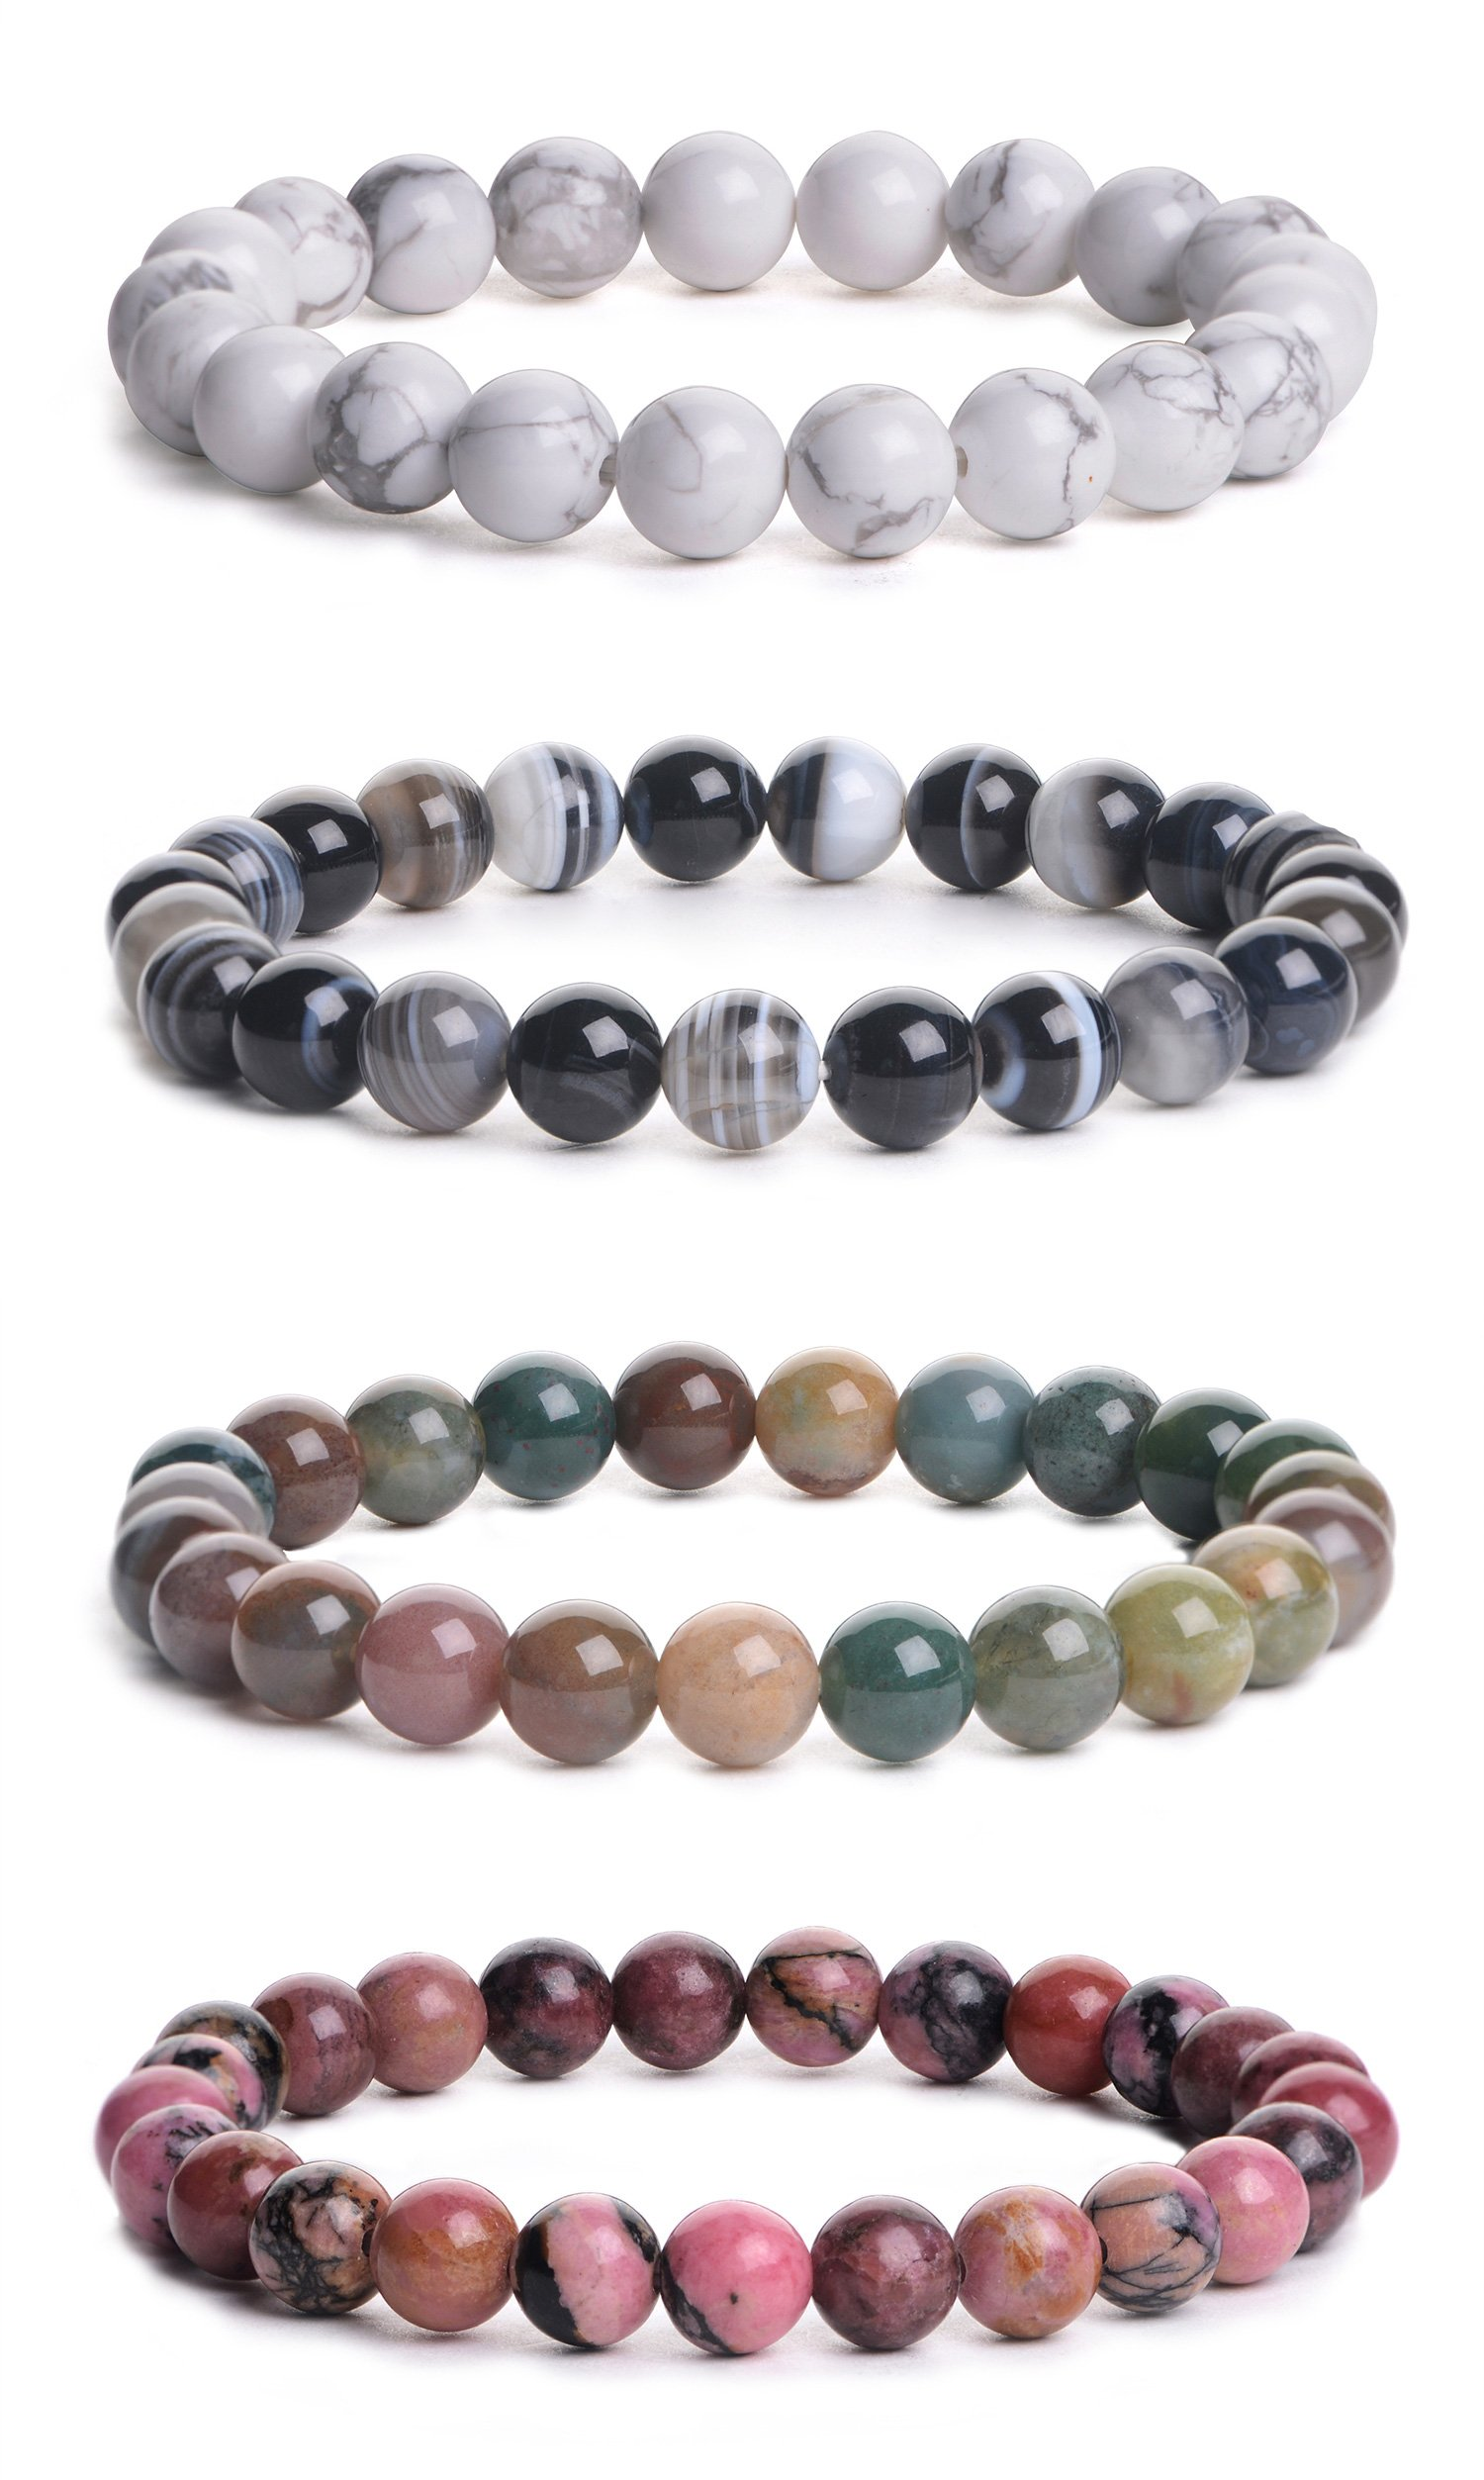 iSTONE Mens Womens Natural Gemstone 8MM Round Beads Healing Power Stretch Bracelet Set of 4 (White Howlite+Banded Agate+ Indian agate+Rhodonite)